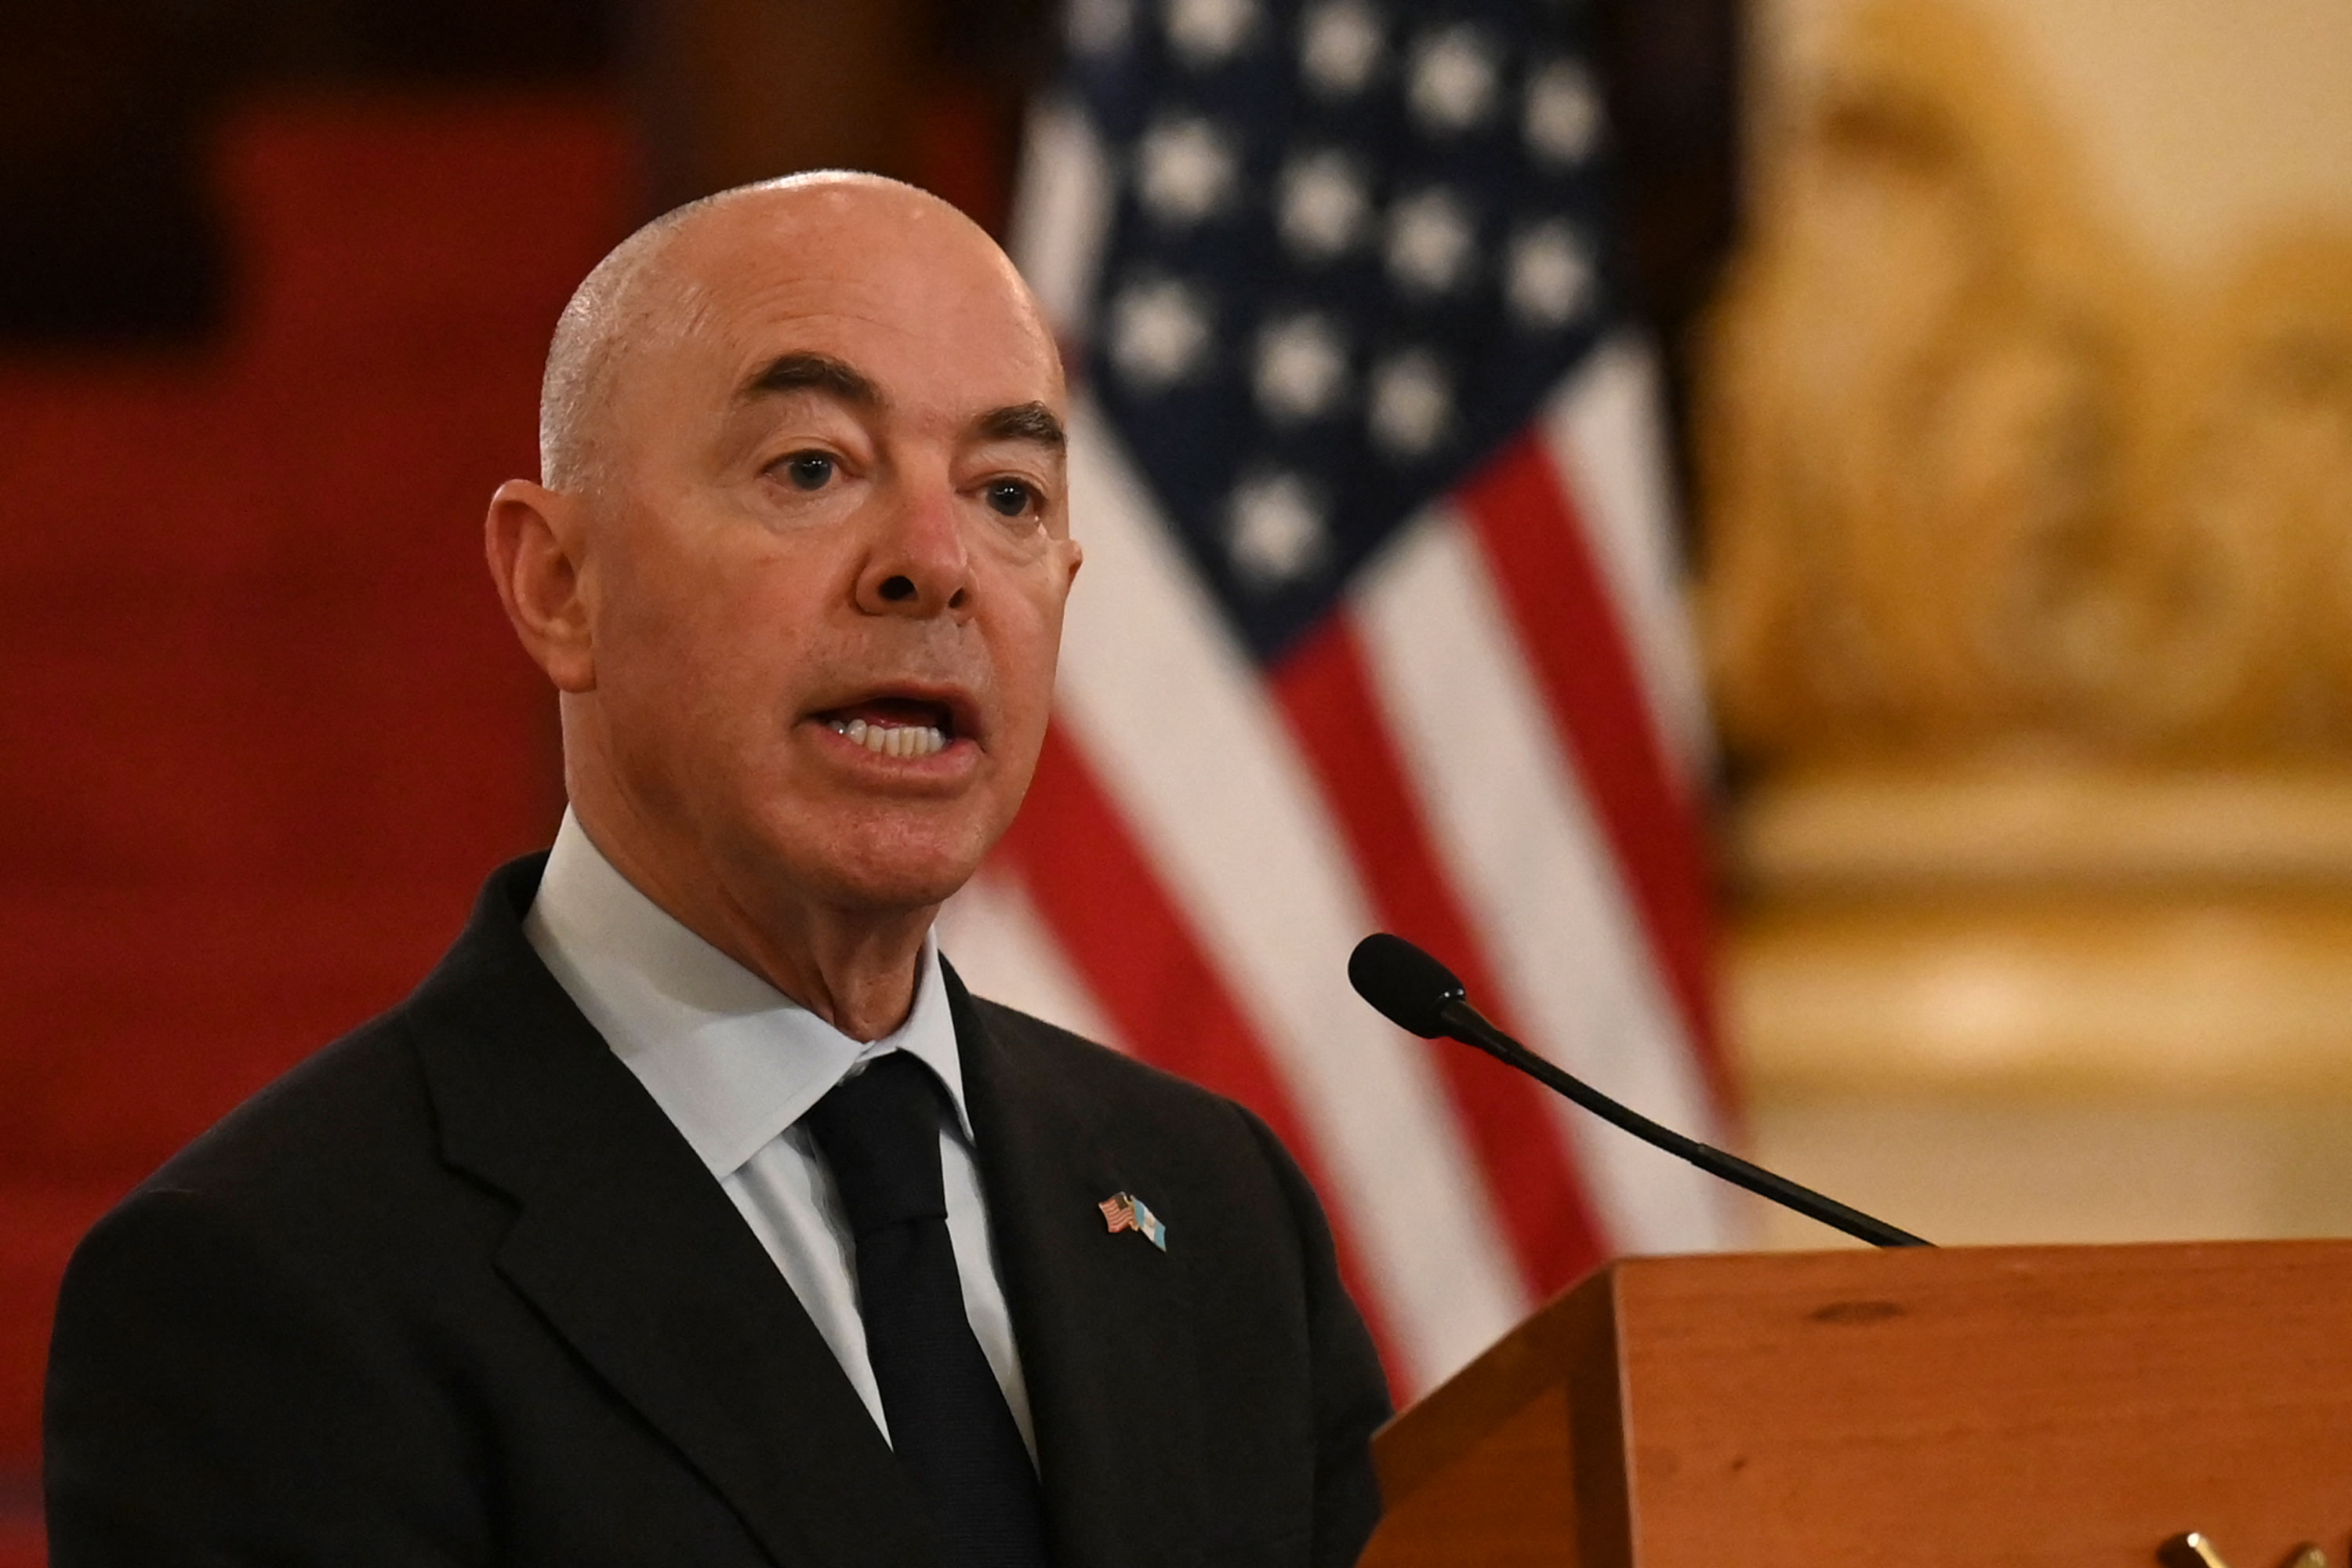 Department of Homeland Security Secretary Alejandro Mayorkas speaks during a press conference on Tuesday, July 6.